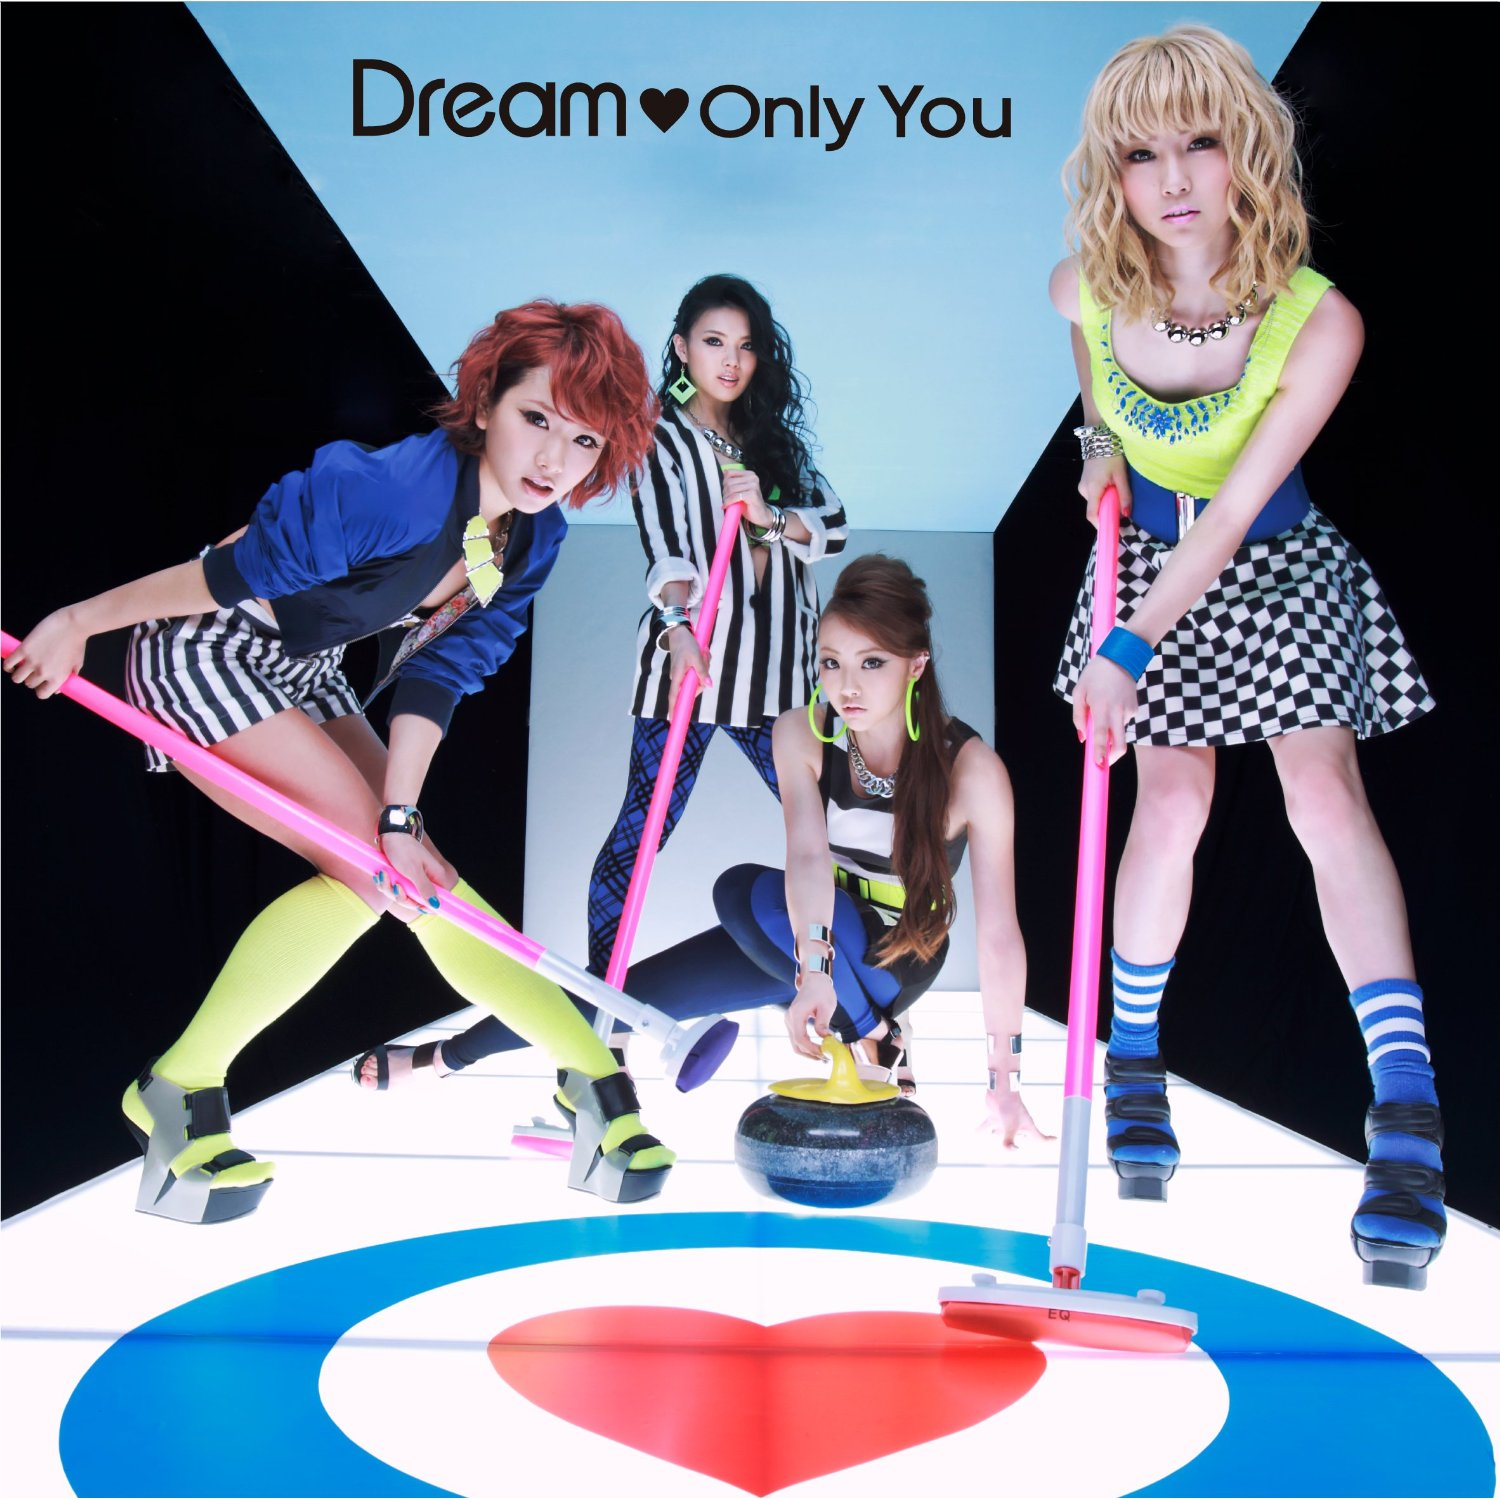 Dreamの代表曲:「Only You」